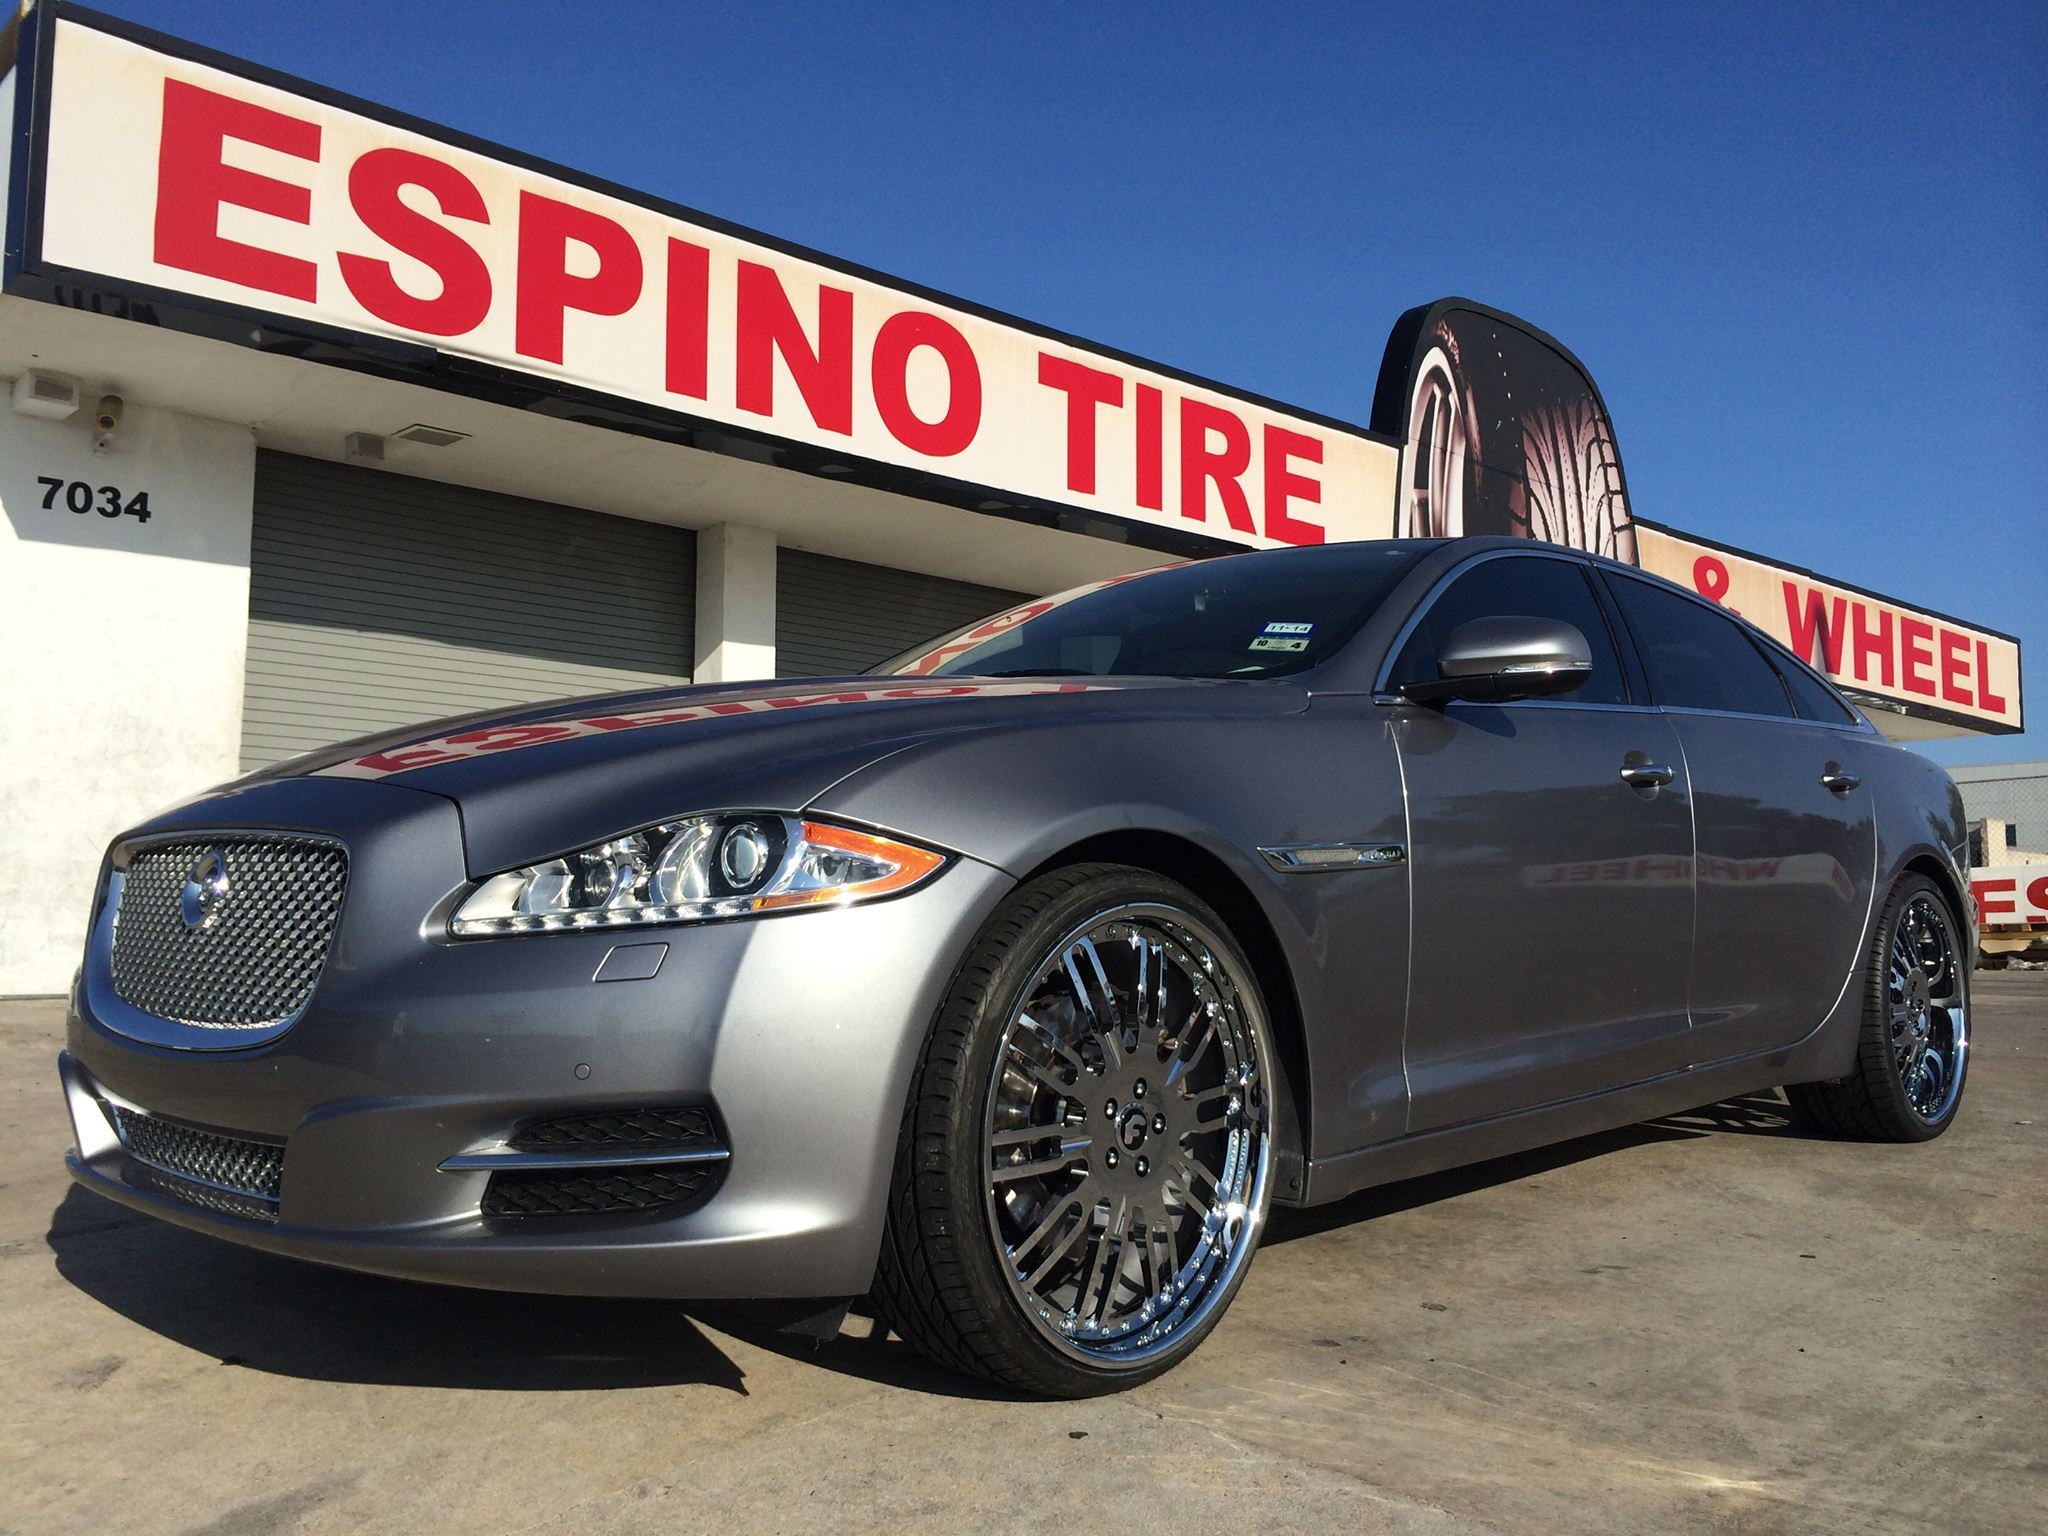 Tires And Wheels Espino Tires And Wheels